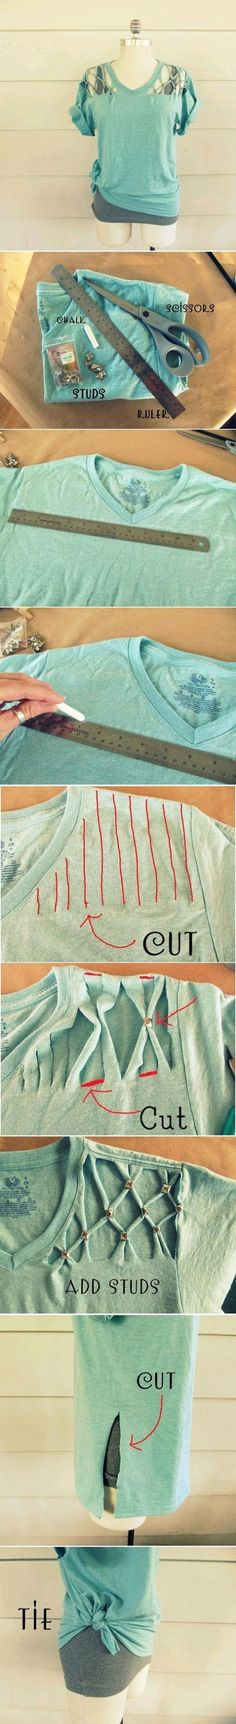 I wouldnt do the bottom part but i love the shoulders Diy Wedding Projects, Easy Diy Projects, Sewing Crafts, Diy Crafts, Diy Upcycled Tees, Studded Shirt, Fashion Diva Design, Diy Clothes Refashion, Diy Clothing